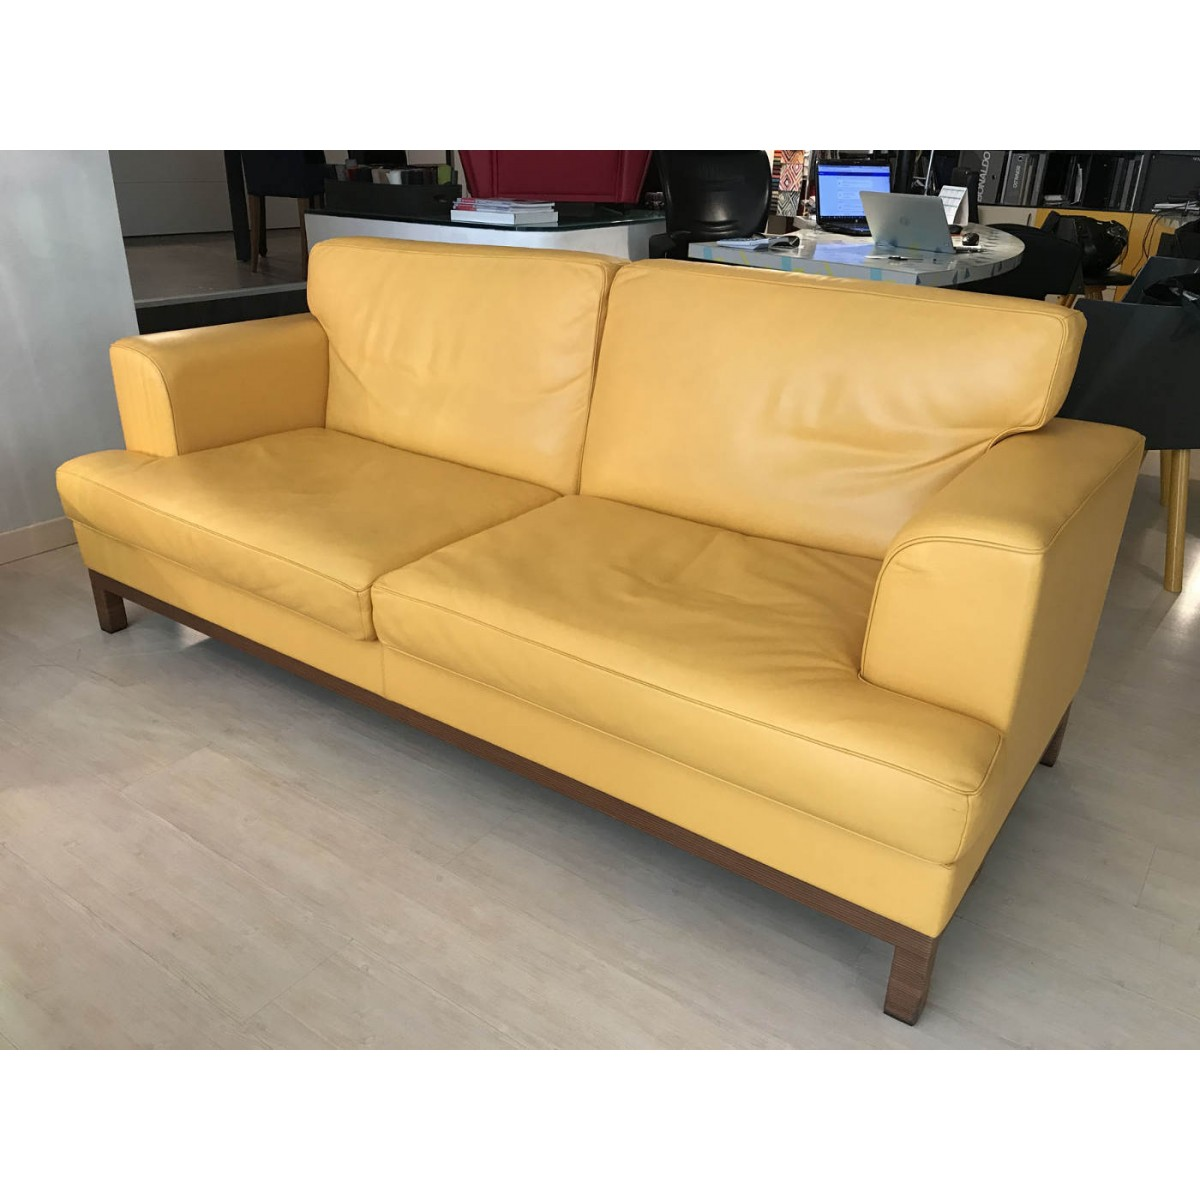 Divano Frau Novecento Prezzo Divano Frau Latest Poltrona Frau Socrate Sofa Person Couch With